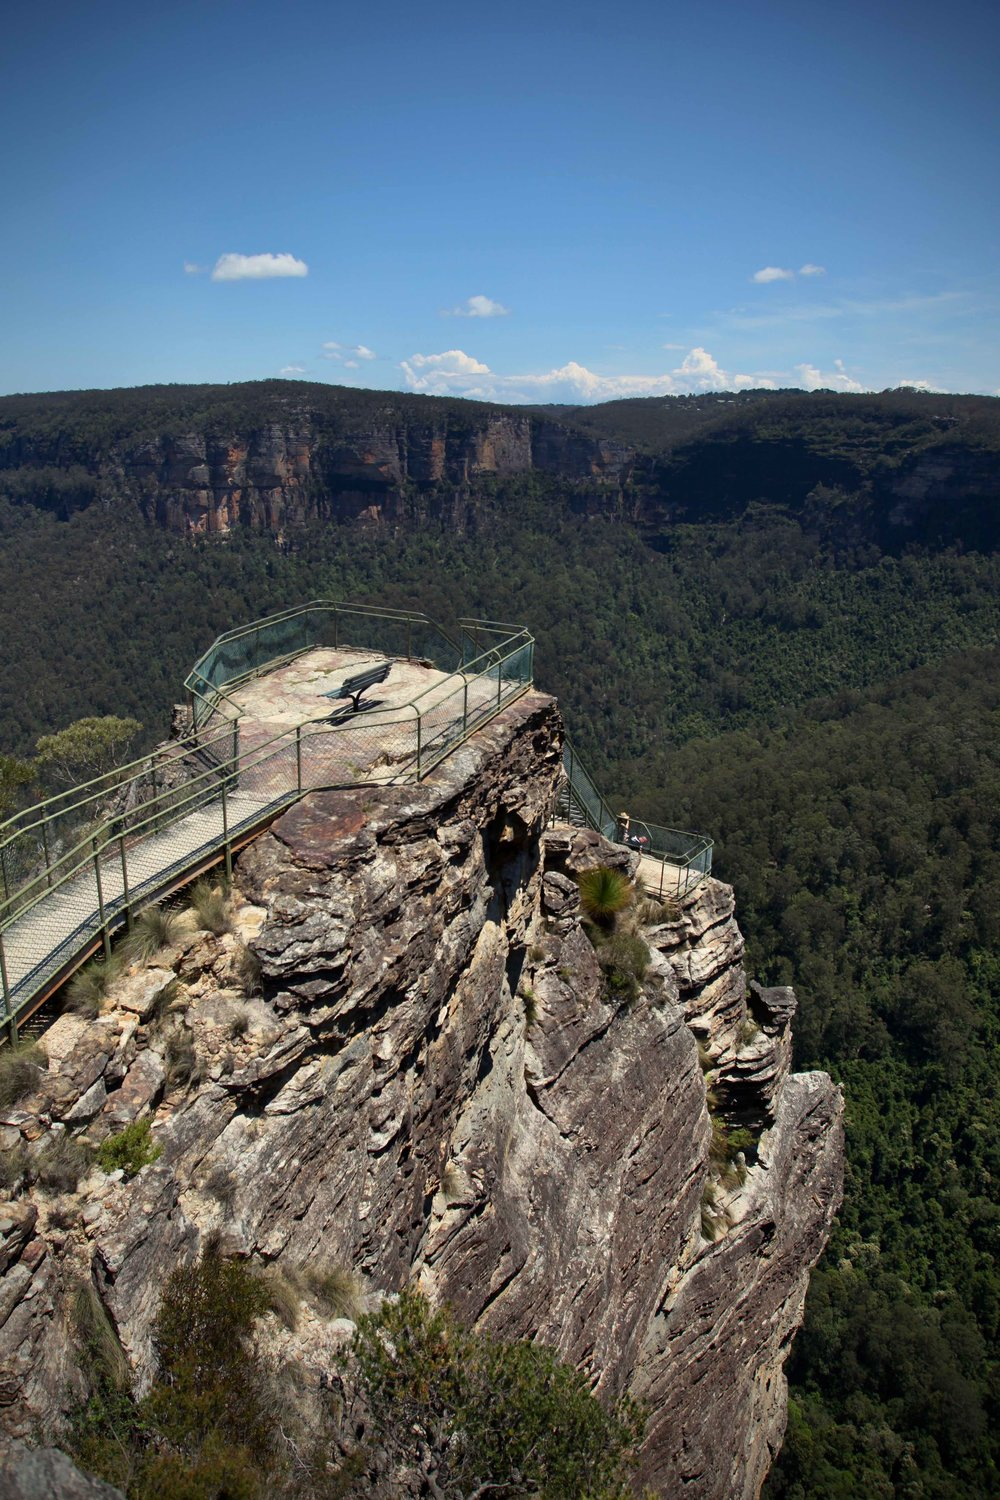 Pulpit Rock at Blackheath in the Blue Mountains National Park